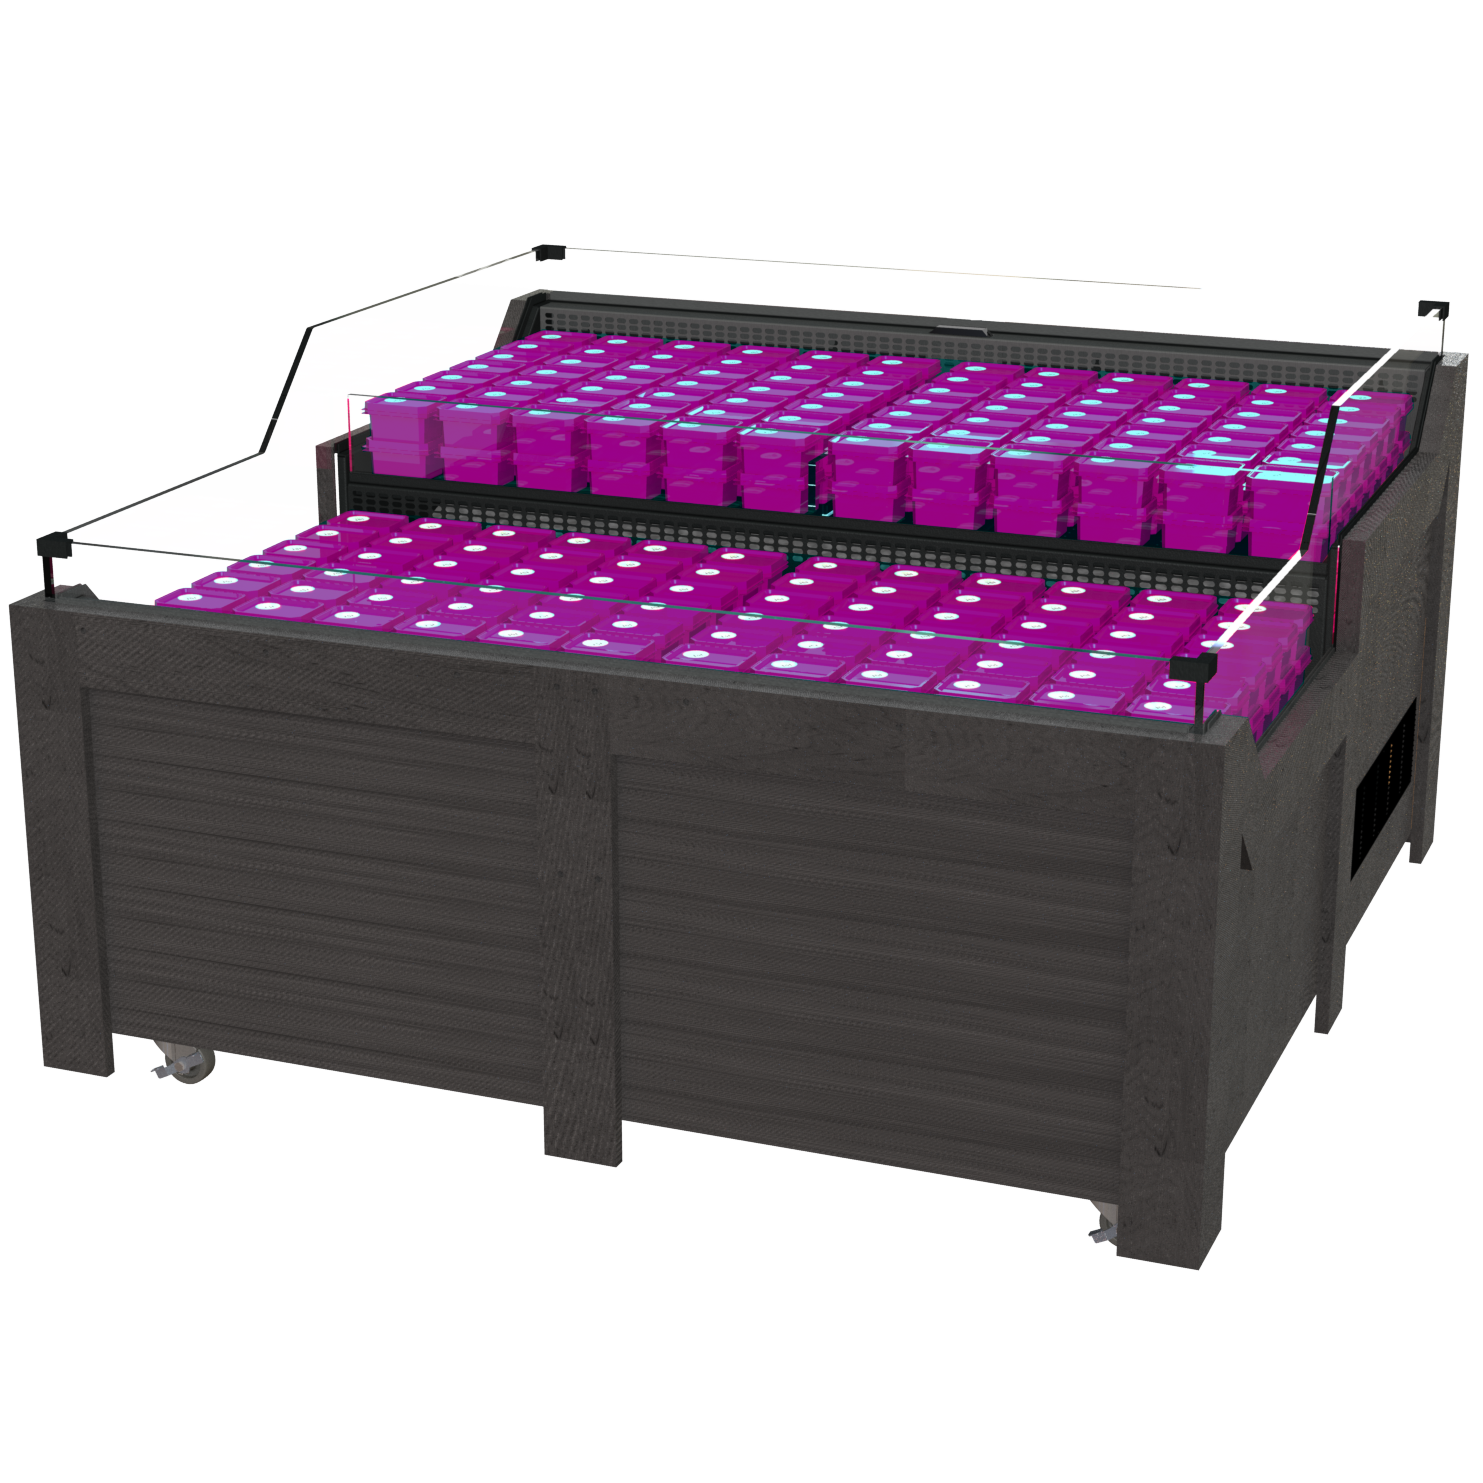 2-Tier Refrigerated Cases (5′-6'W)